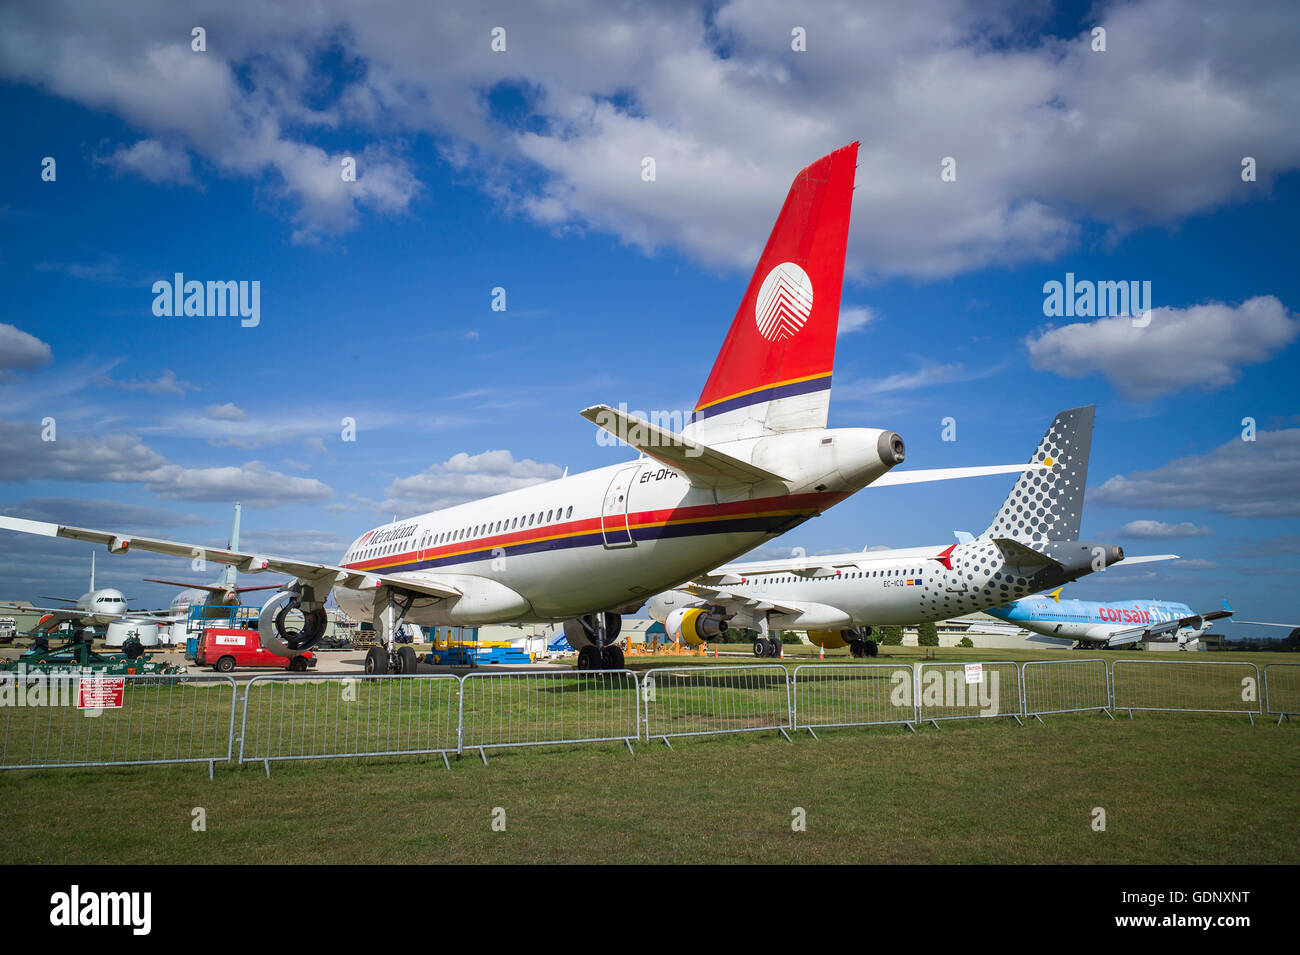 Old civil aircraft undergoing or awaiting to be dismantled at Kemble UK - Stock Image